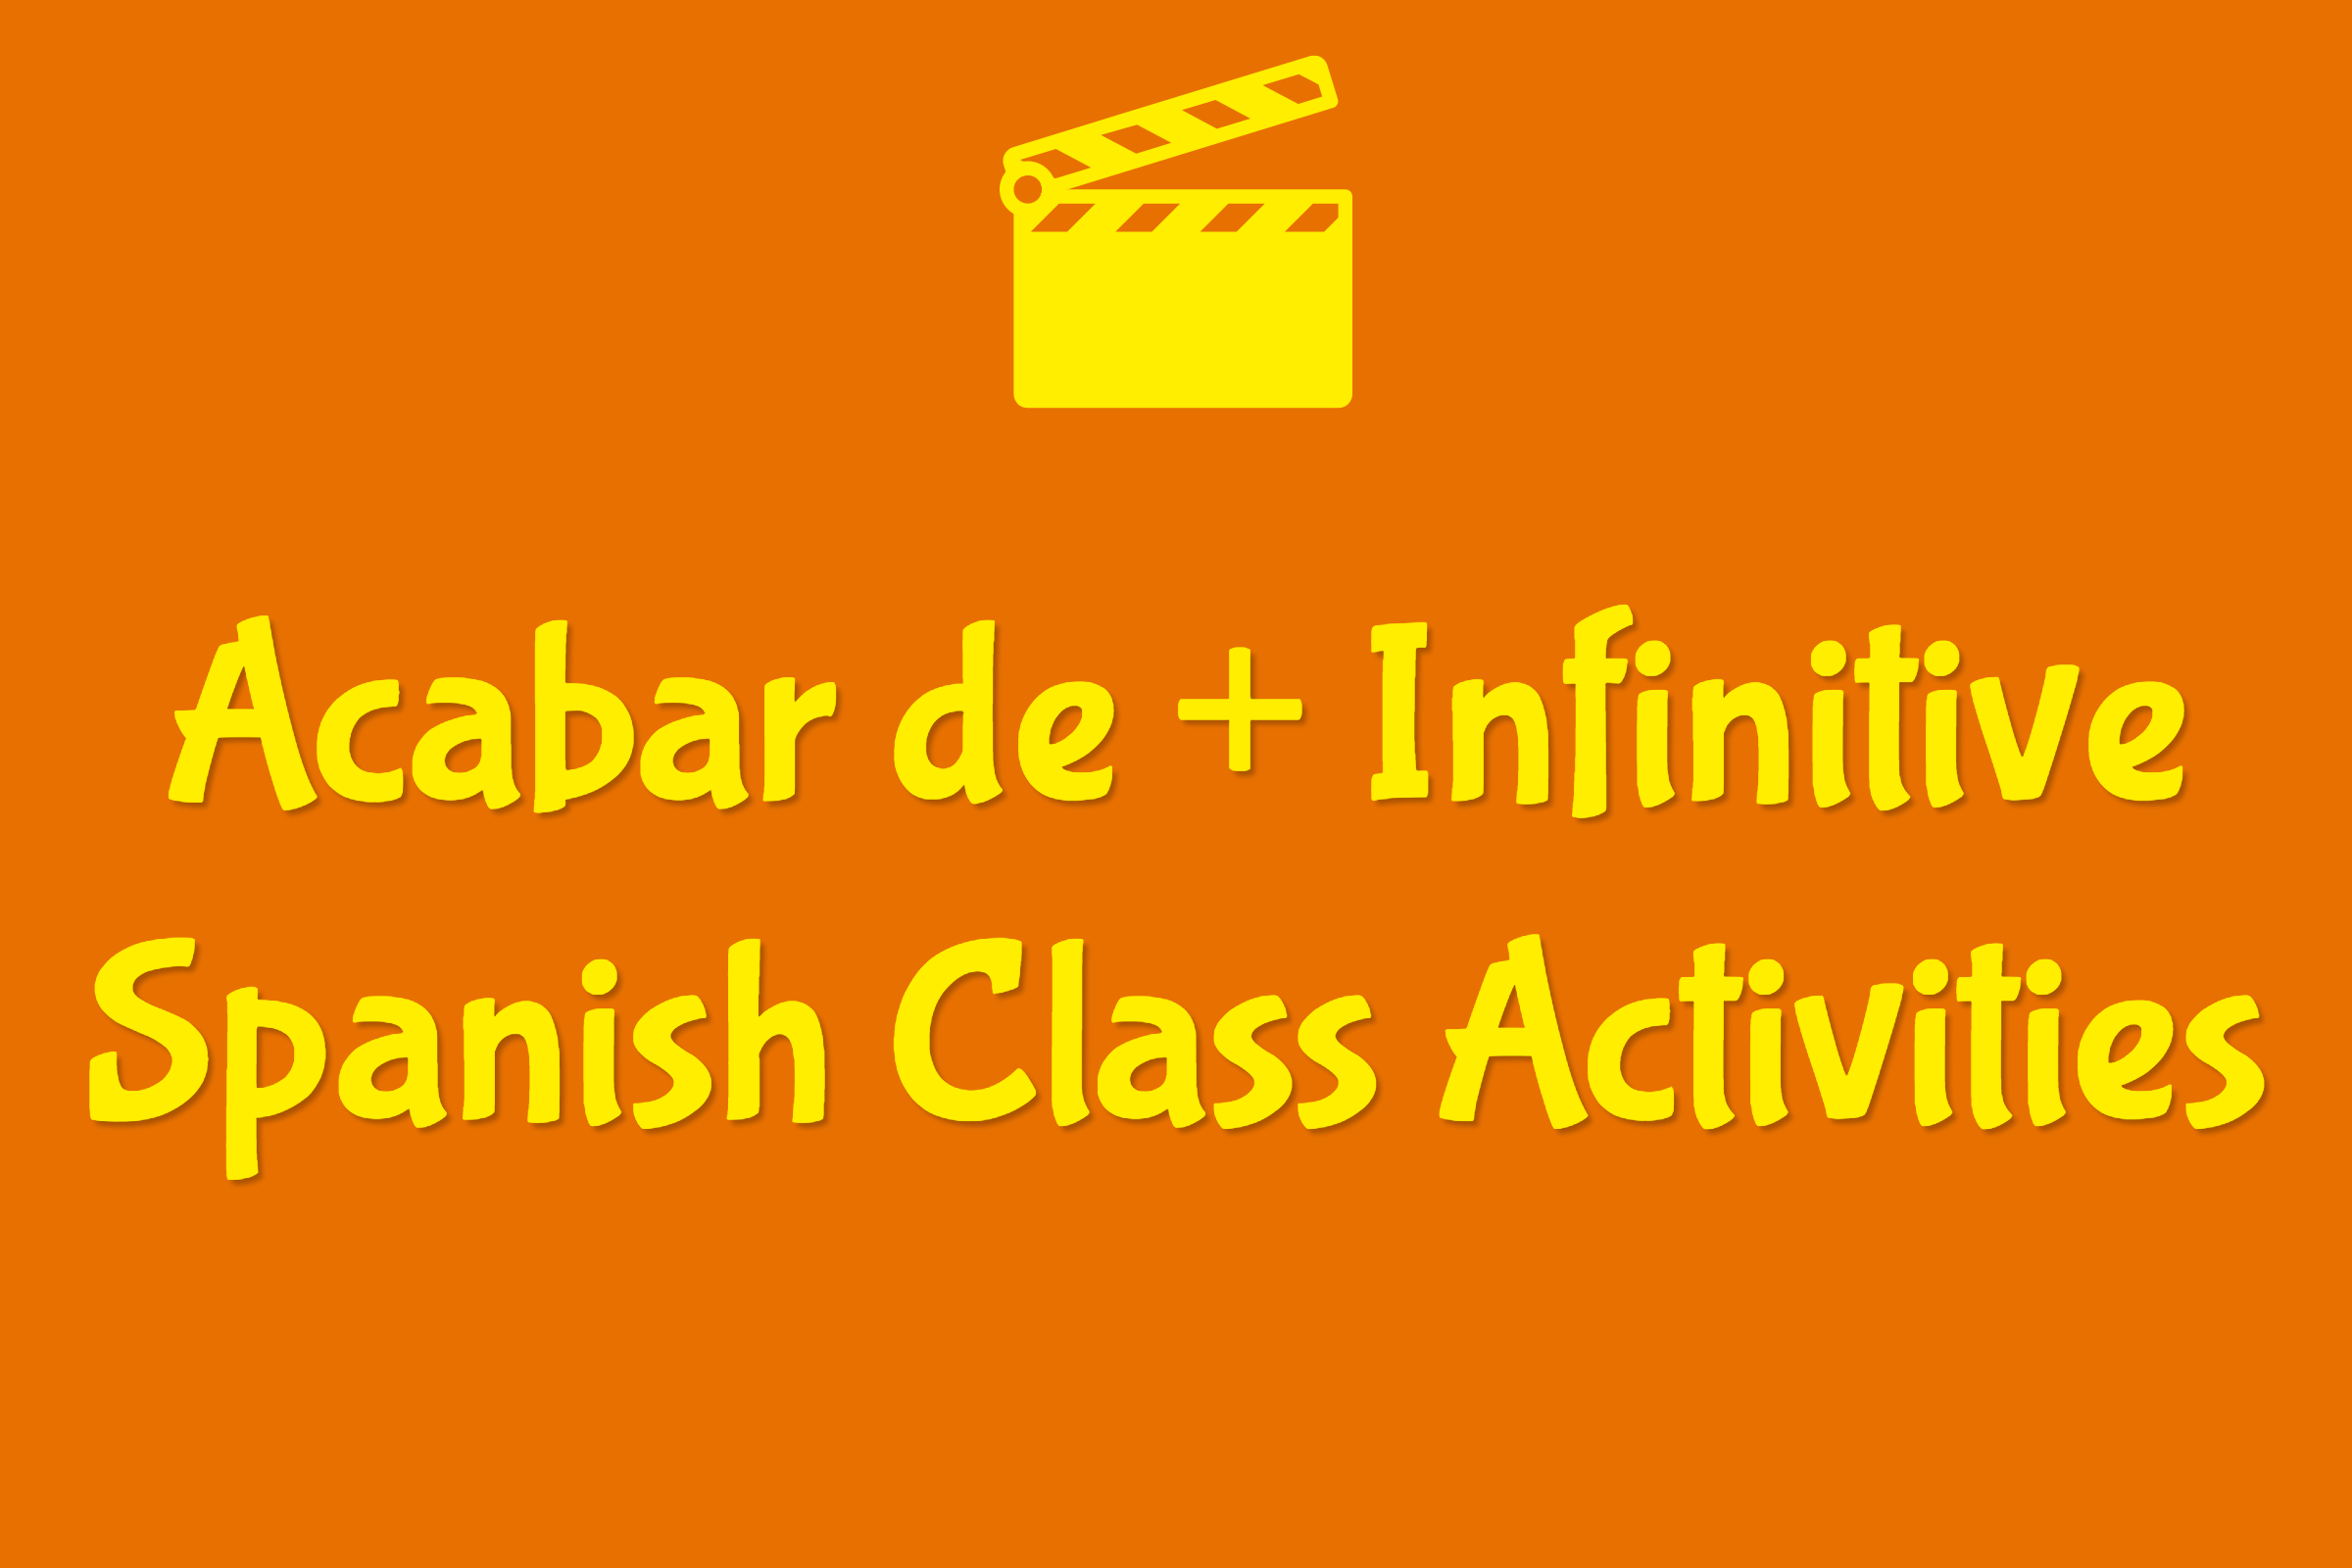 worksheet Acabar De Worksheet acabar de infinitive spanish class activities activities